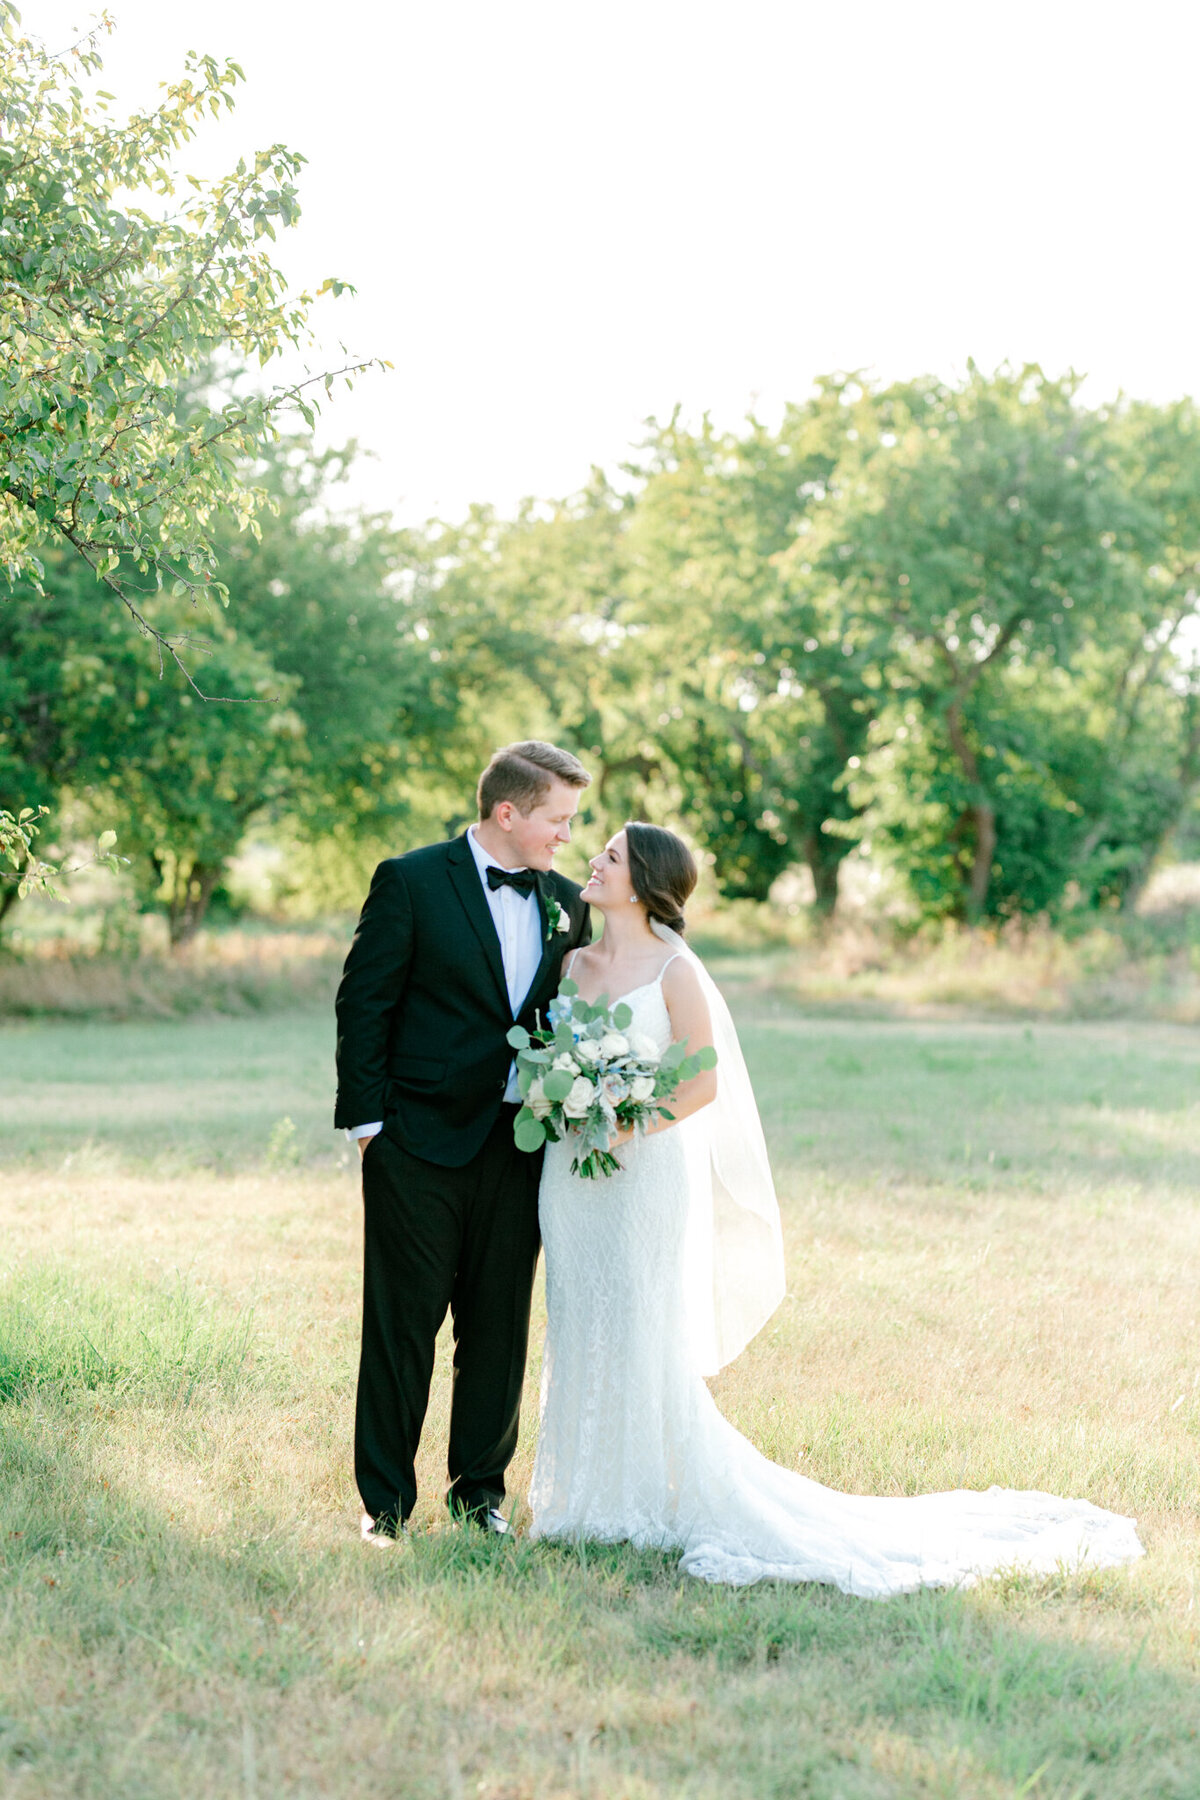 Anna & Billy's Wedding at The Nest at Ruth Farms | Dallas Wedding Photographer | Sami Kathryn Photography-162